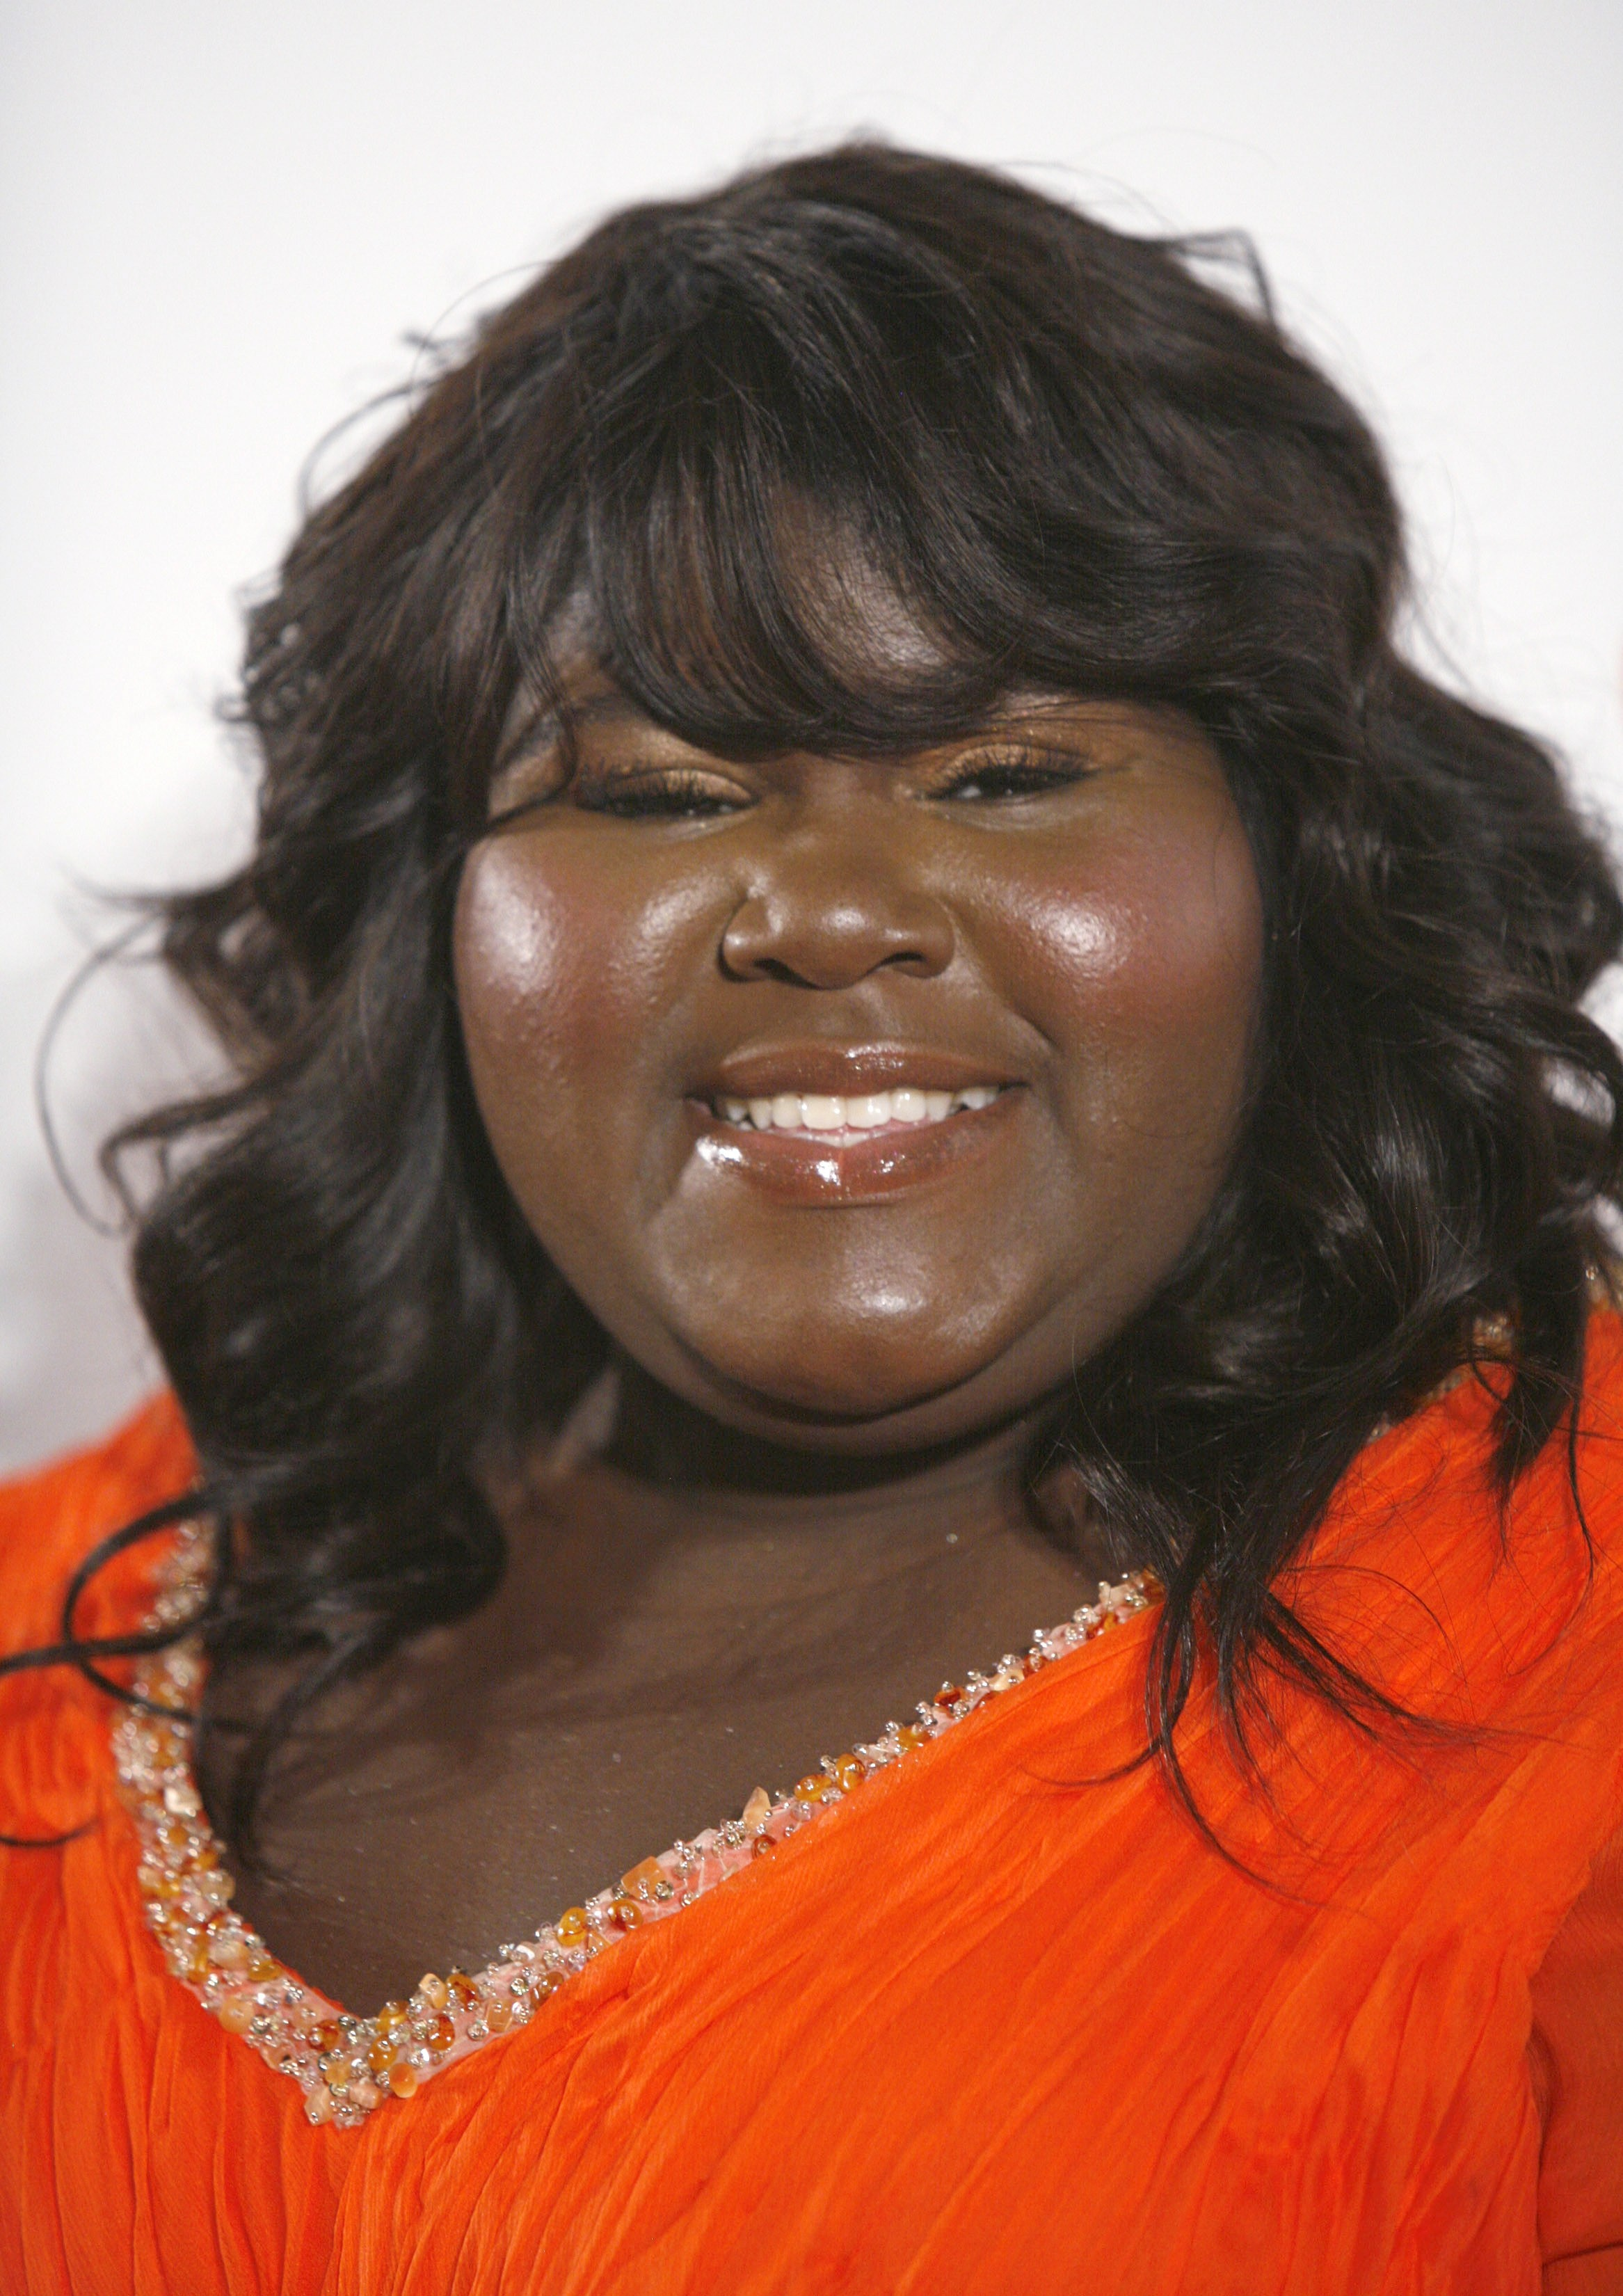 Gabourey Sidibe, Actress, 5.6.83